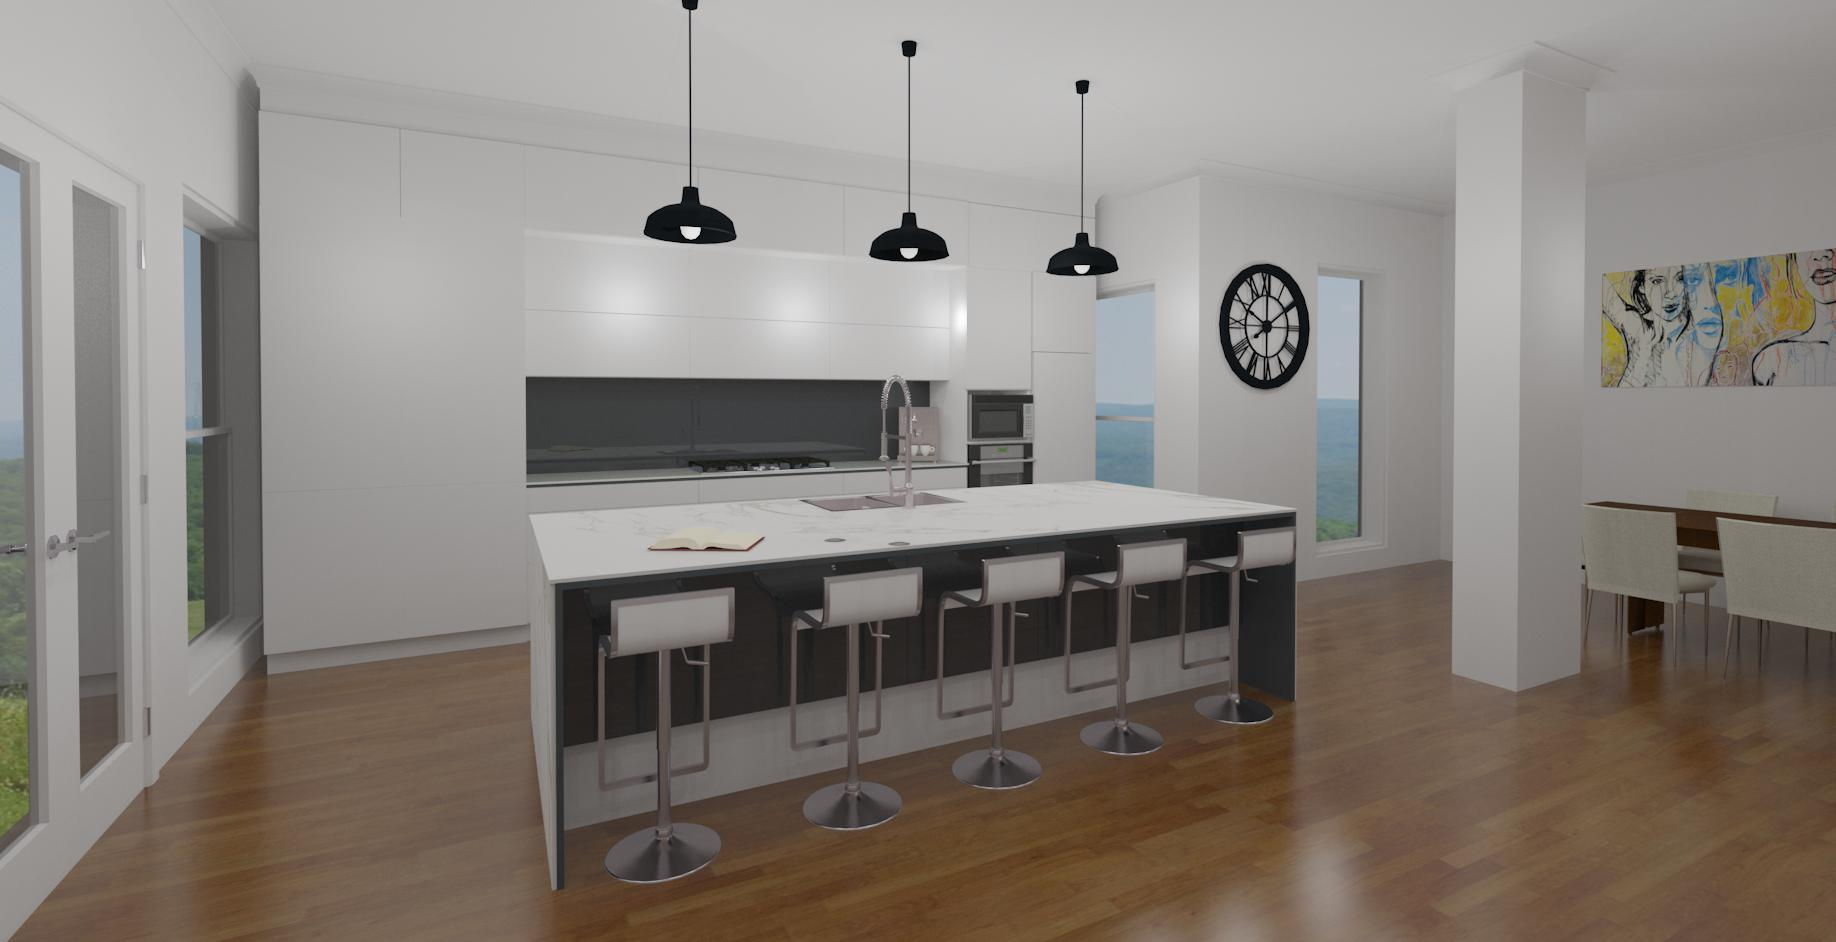 Second Hi detailed kitchen 3D perspective